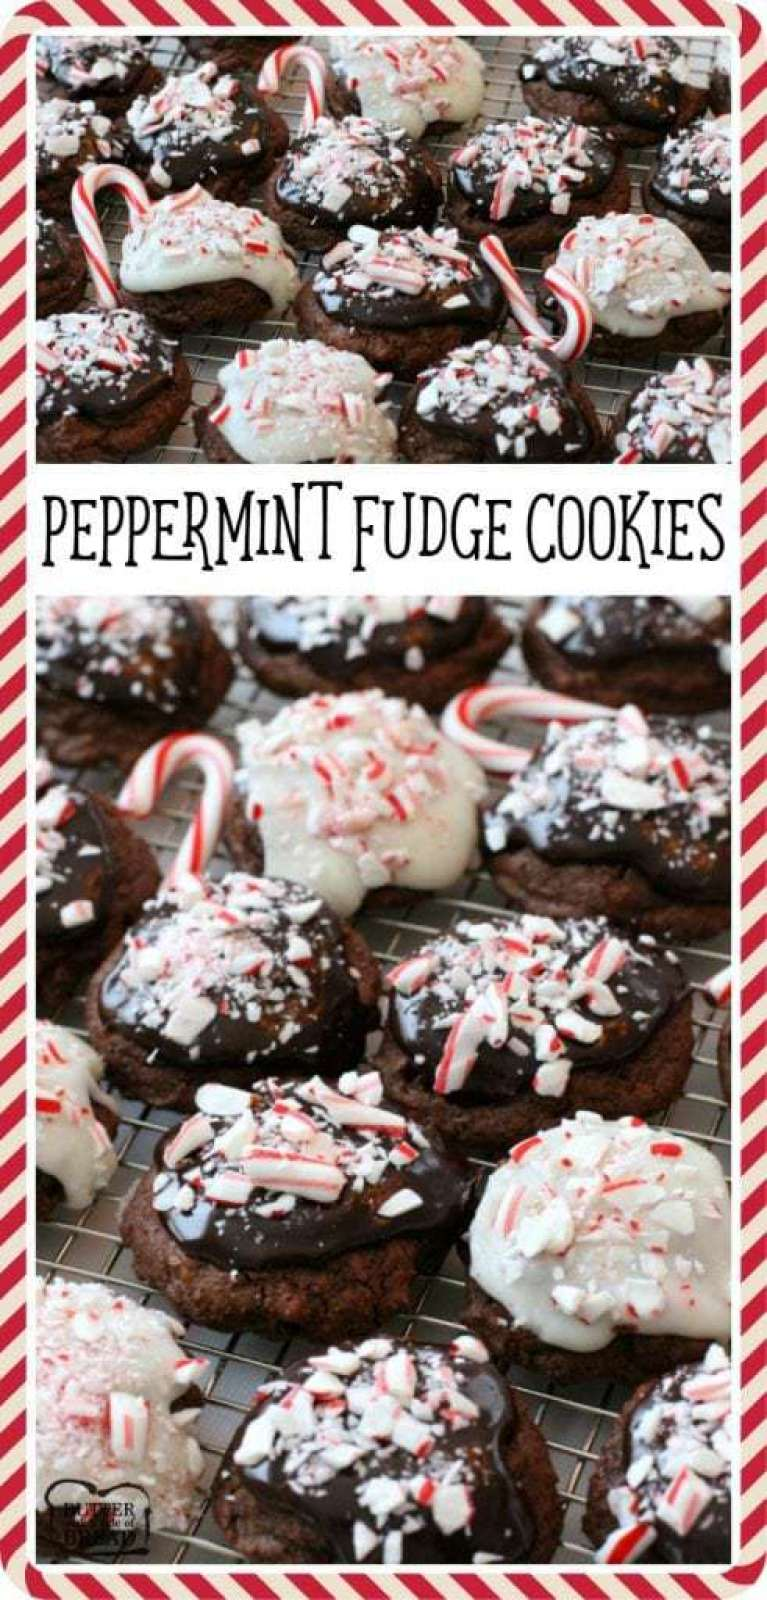 Peppermint Fudge Cookies - Butter With A Side of Bread